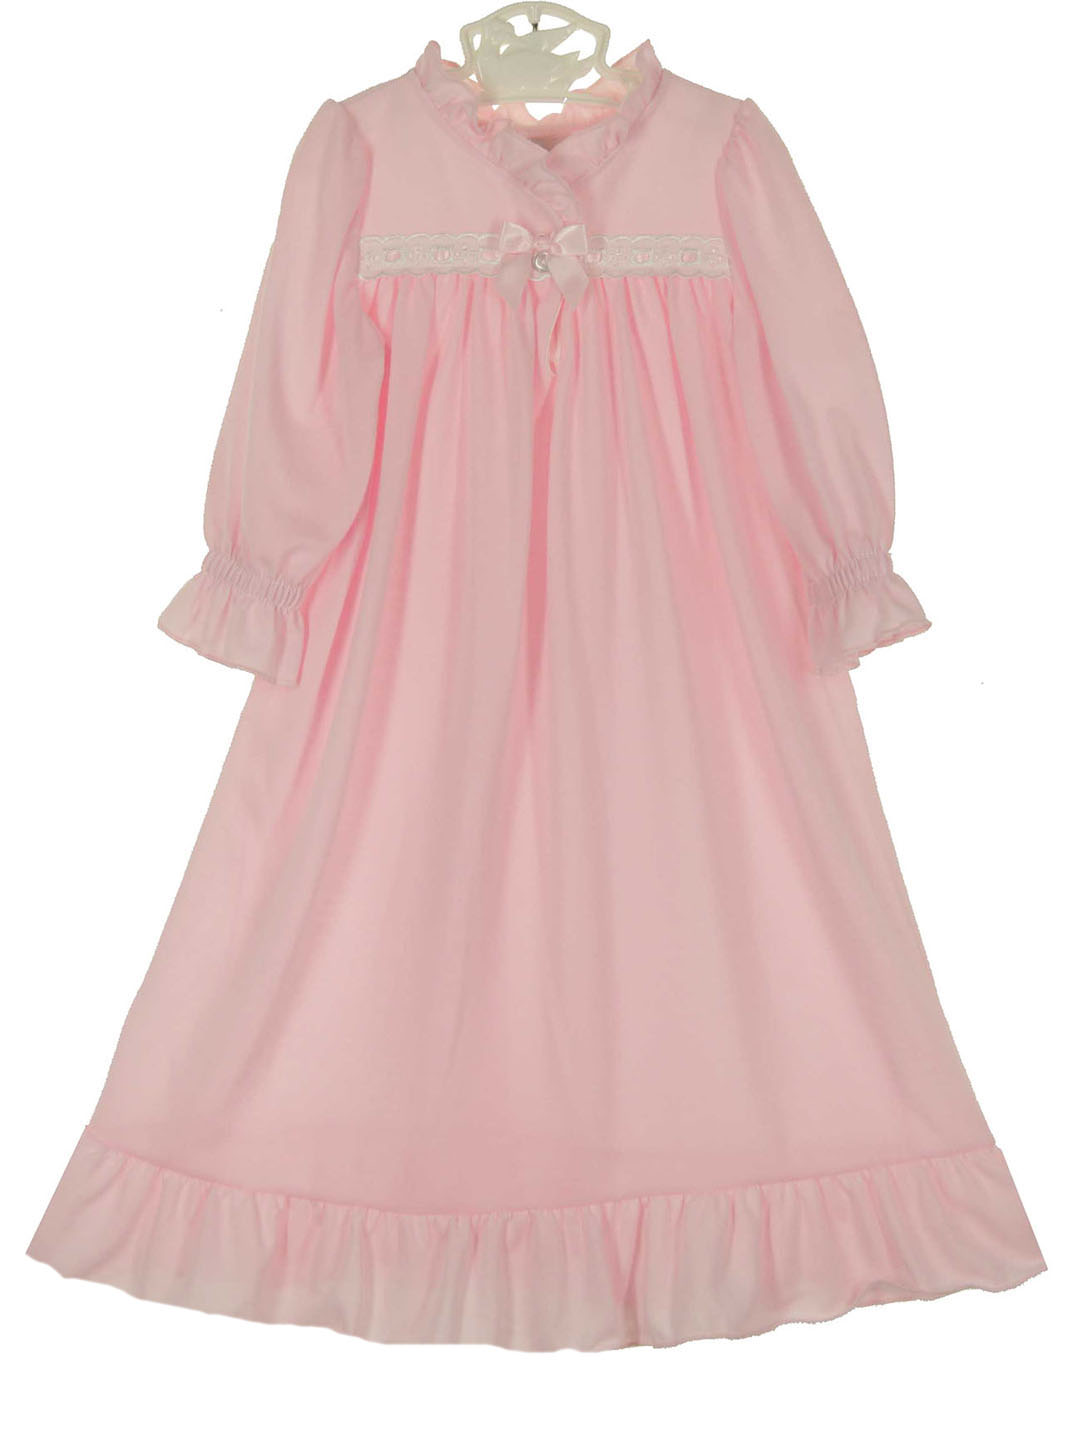 pink knit nightgown with pink ribbon,pink nightgown for baby girls ...